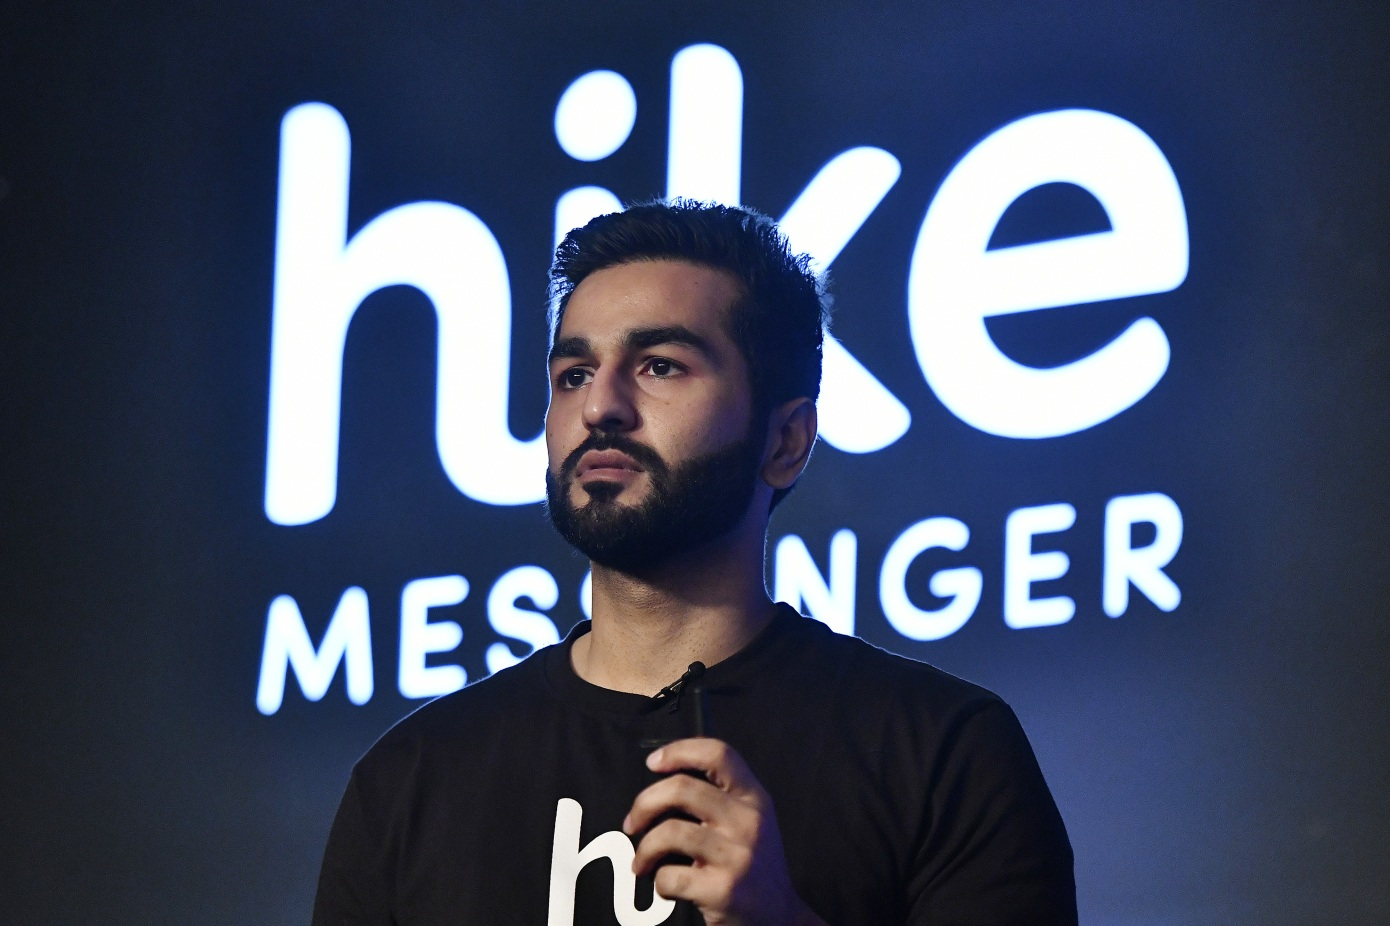 Tencent-backed Hike, once India's answer to WhatsApp, has given up on messaging